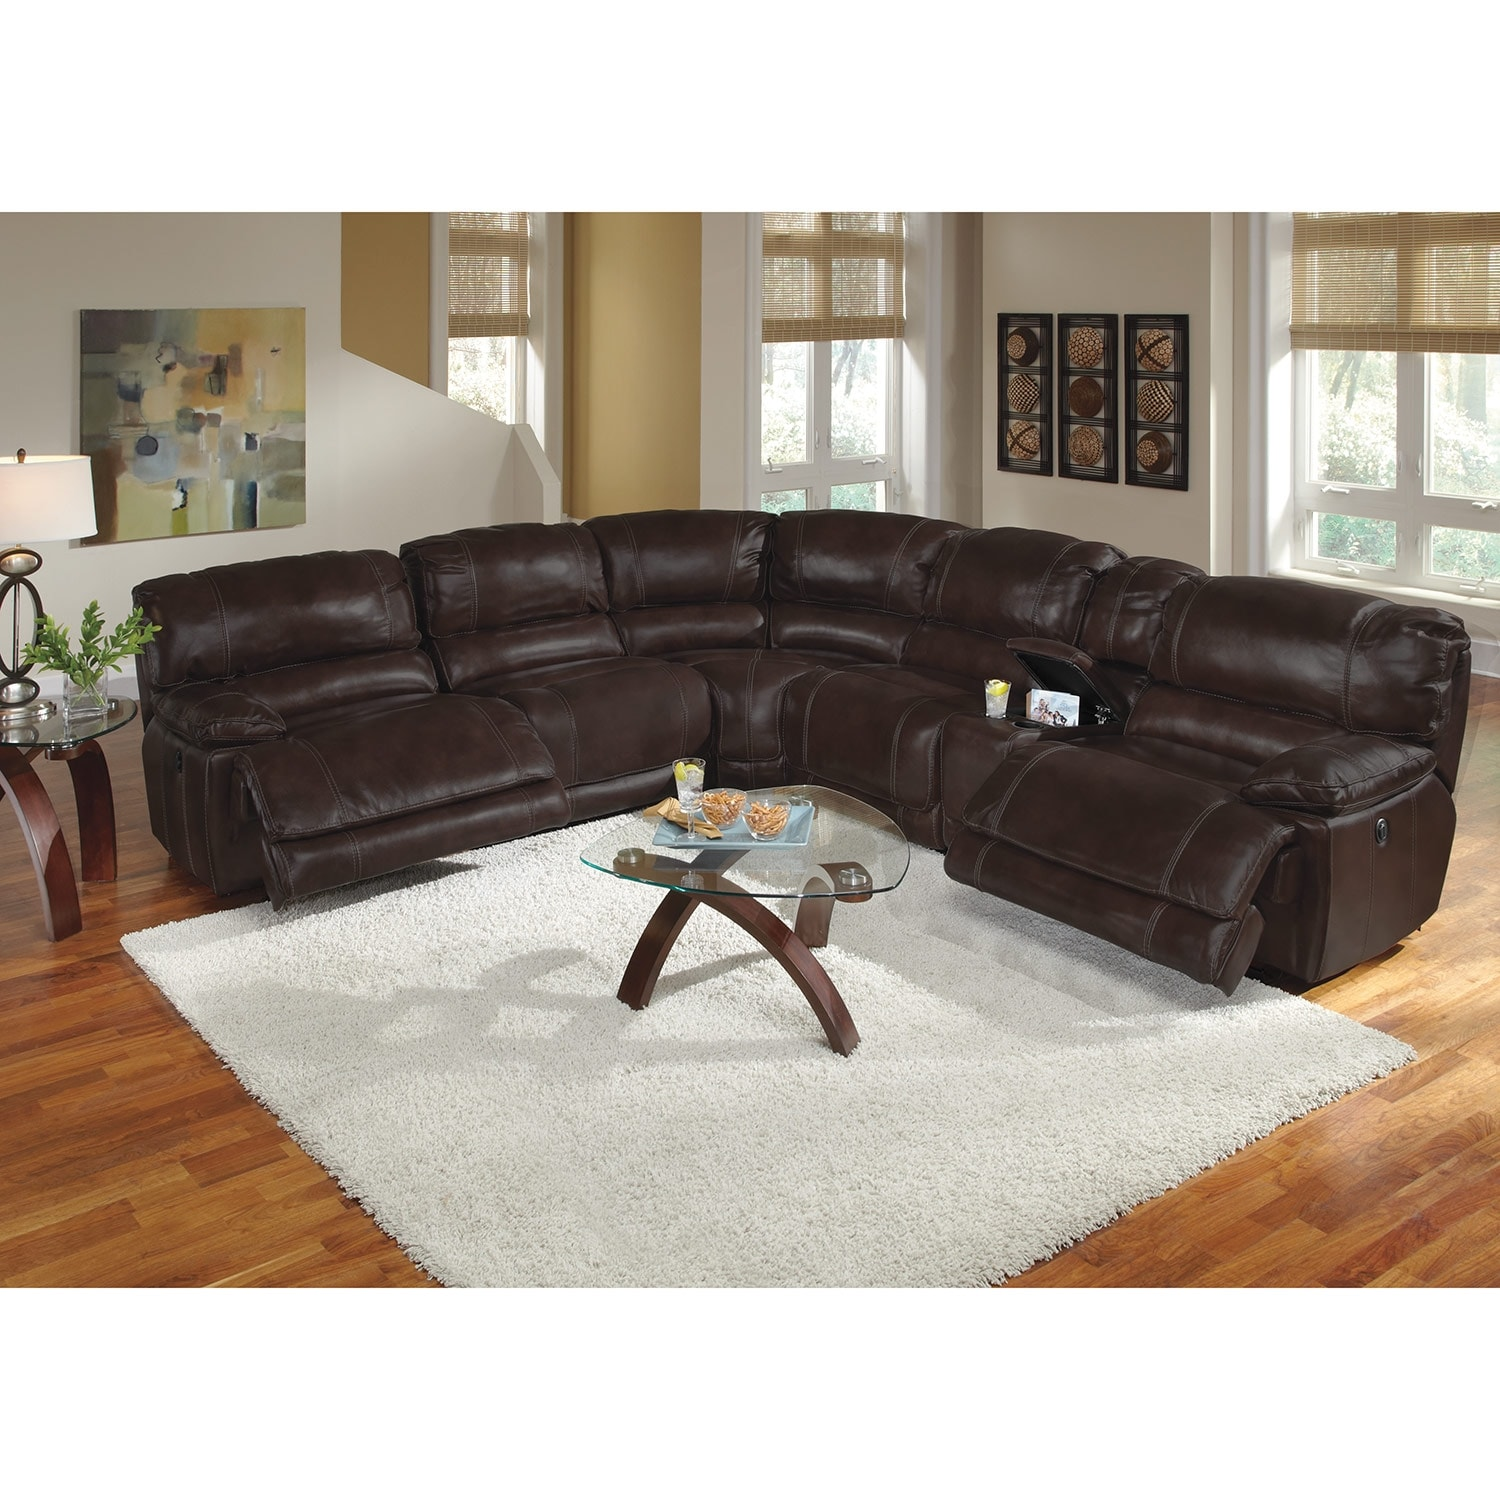 Midori 6 Pc Leather Power Reclining Sectional Sofa: St. Malo Leather 6 Pc. Power Reclining Sectional